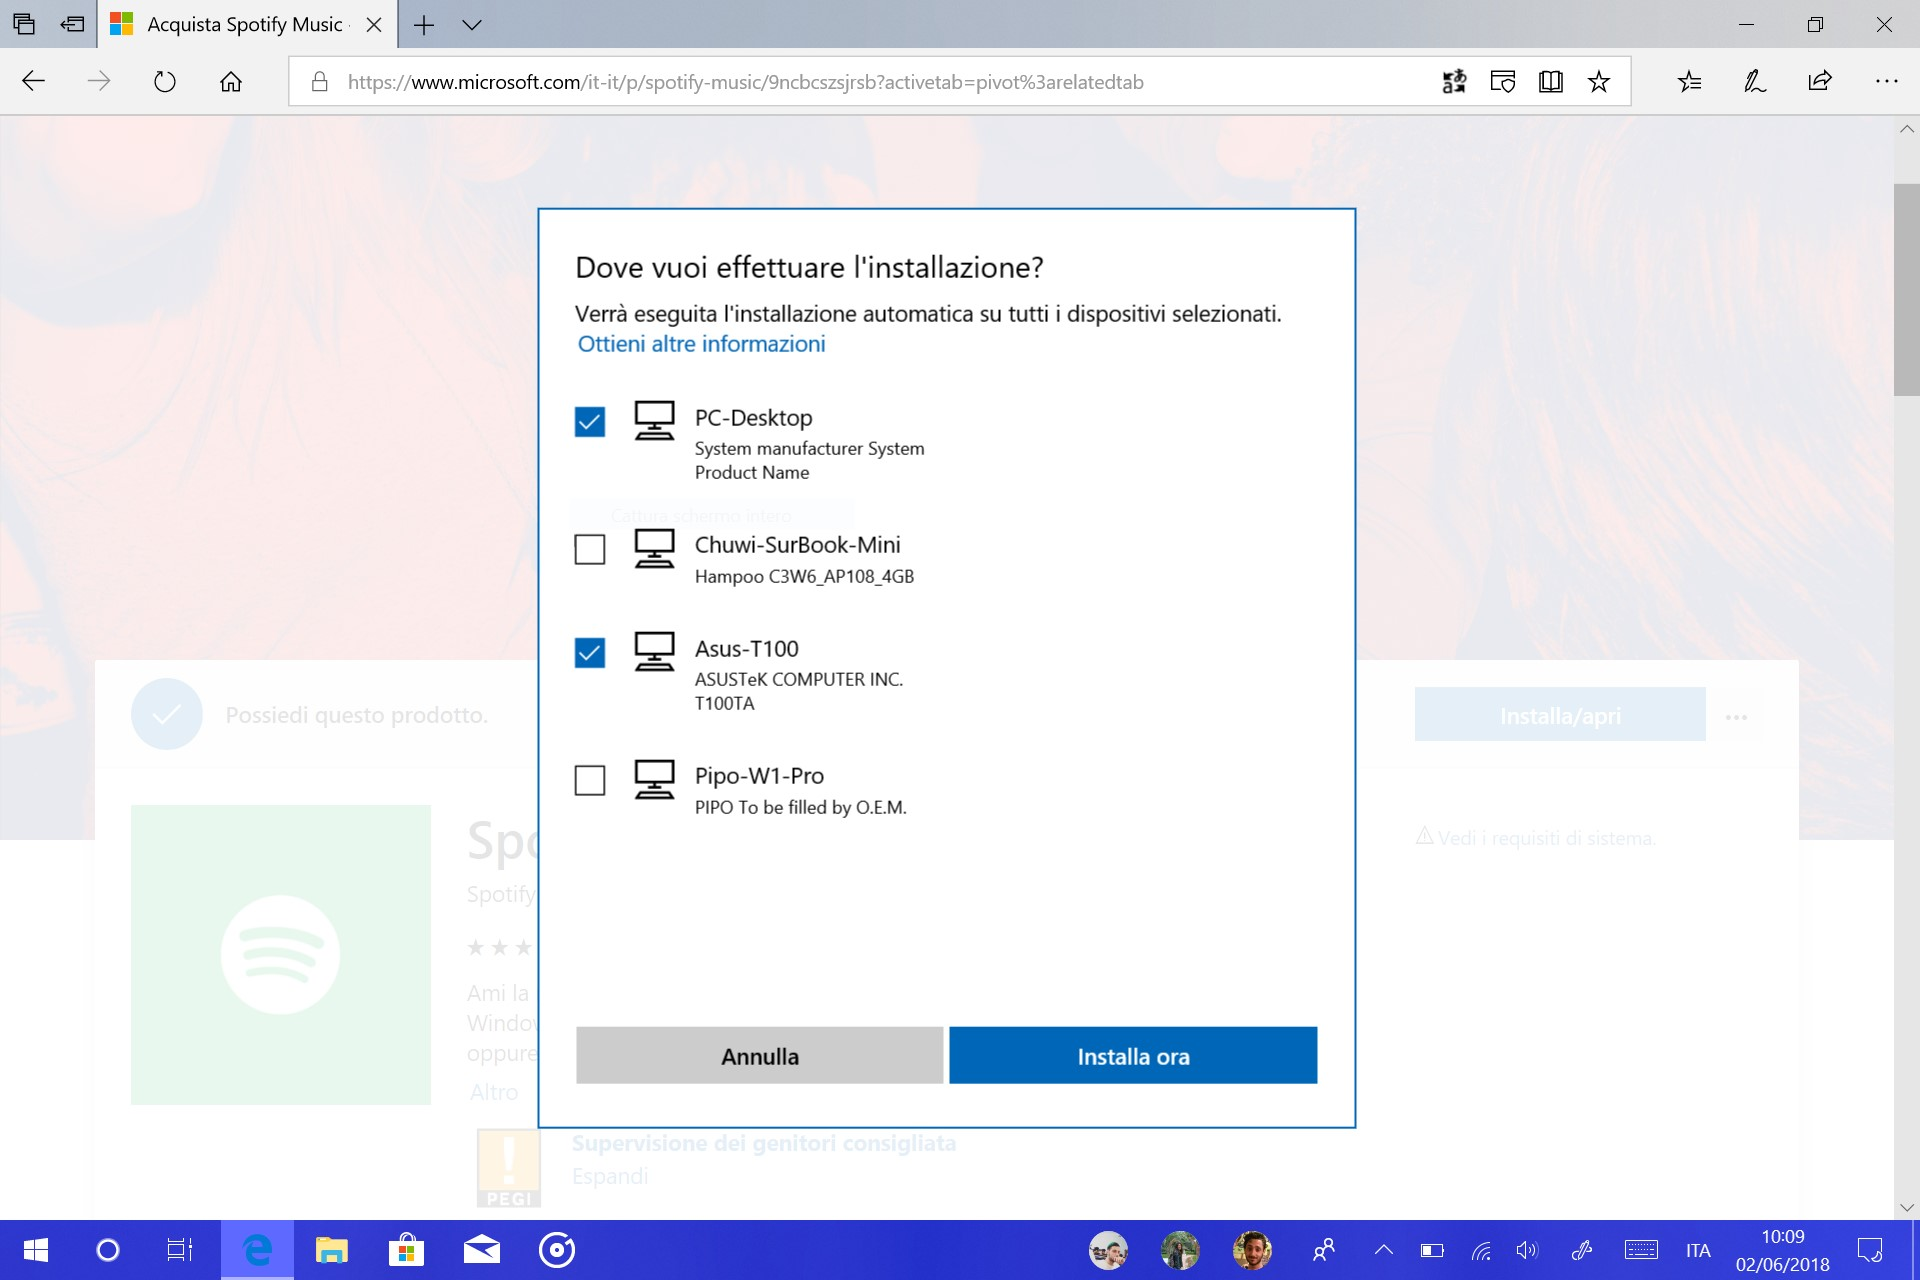 Microsoft Store web installazione app remoto dispositivi Windows 10